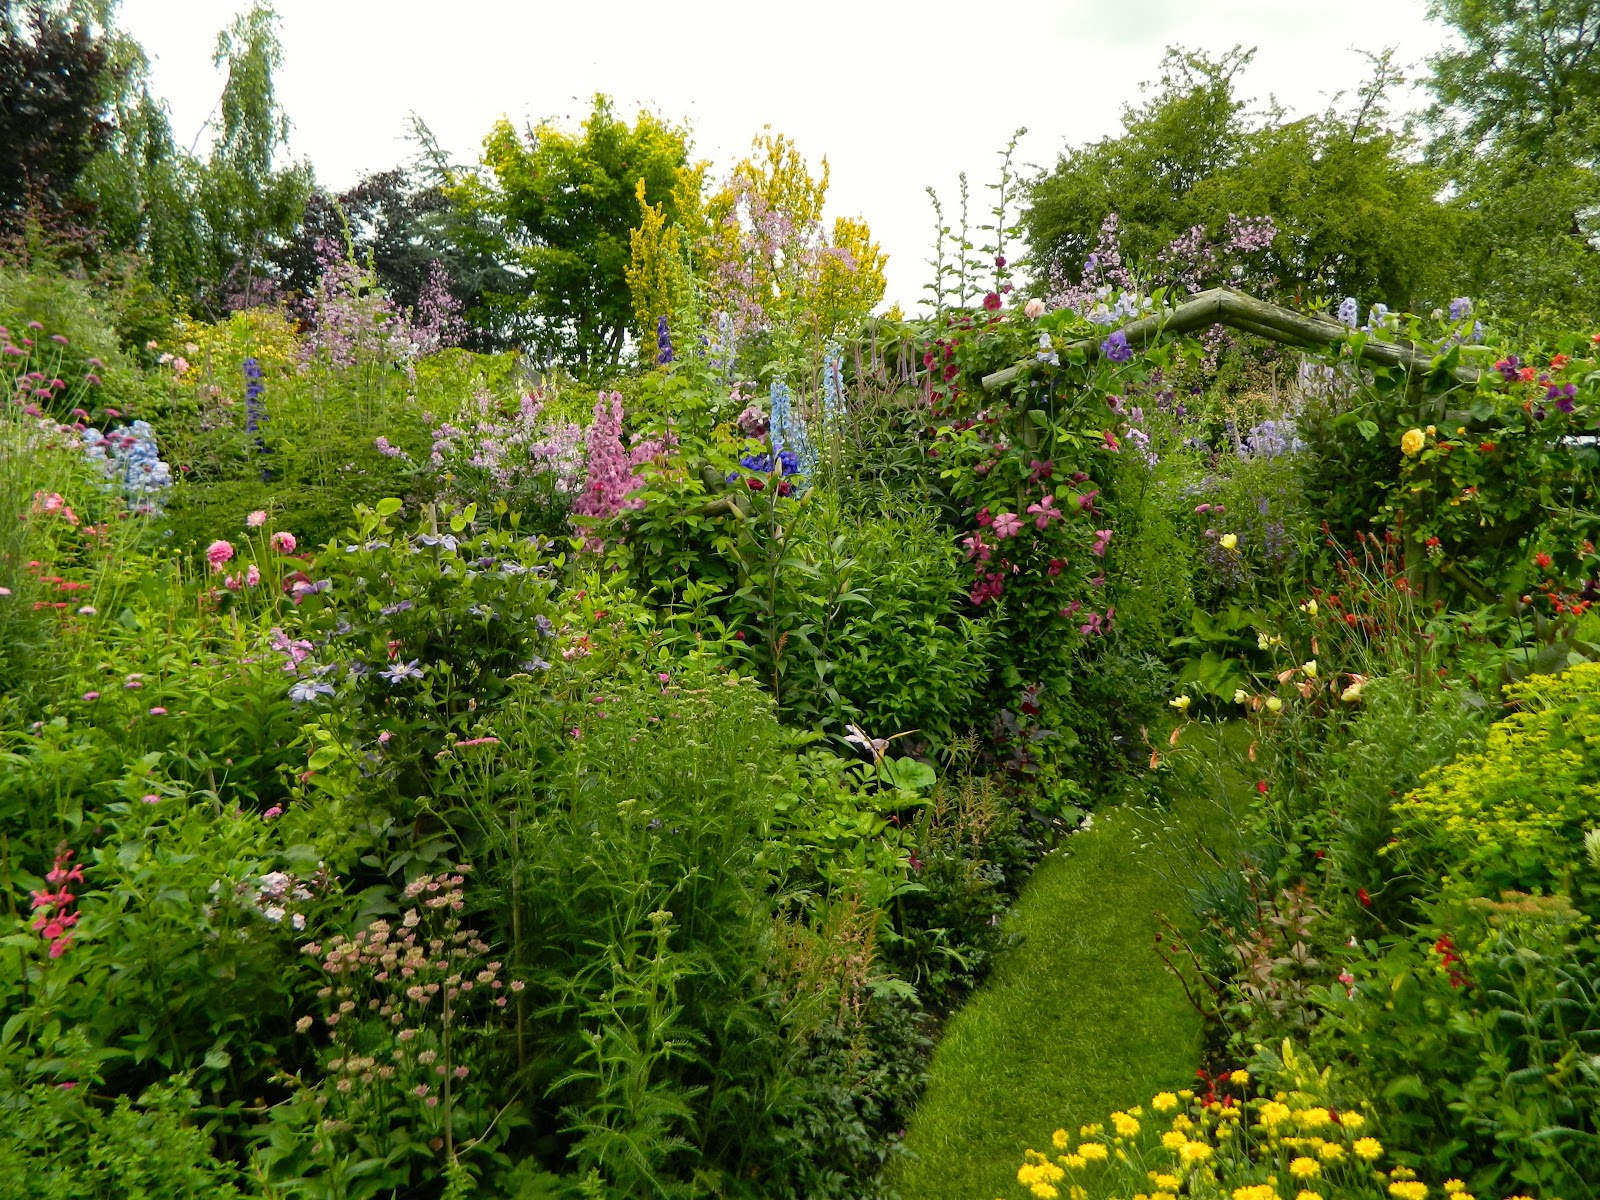 English cottage garden ideas - Come With Me On A Walk Through A Traditional Cottage Garden In England I Took These Photographs Last Summer When I Visited Grafton Cottage